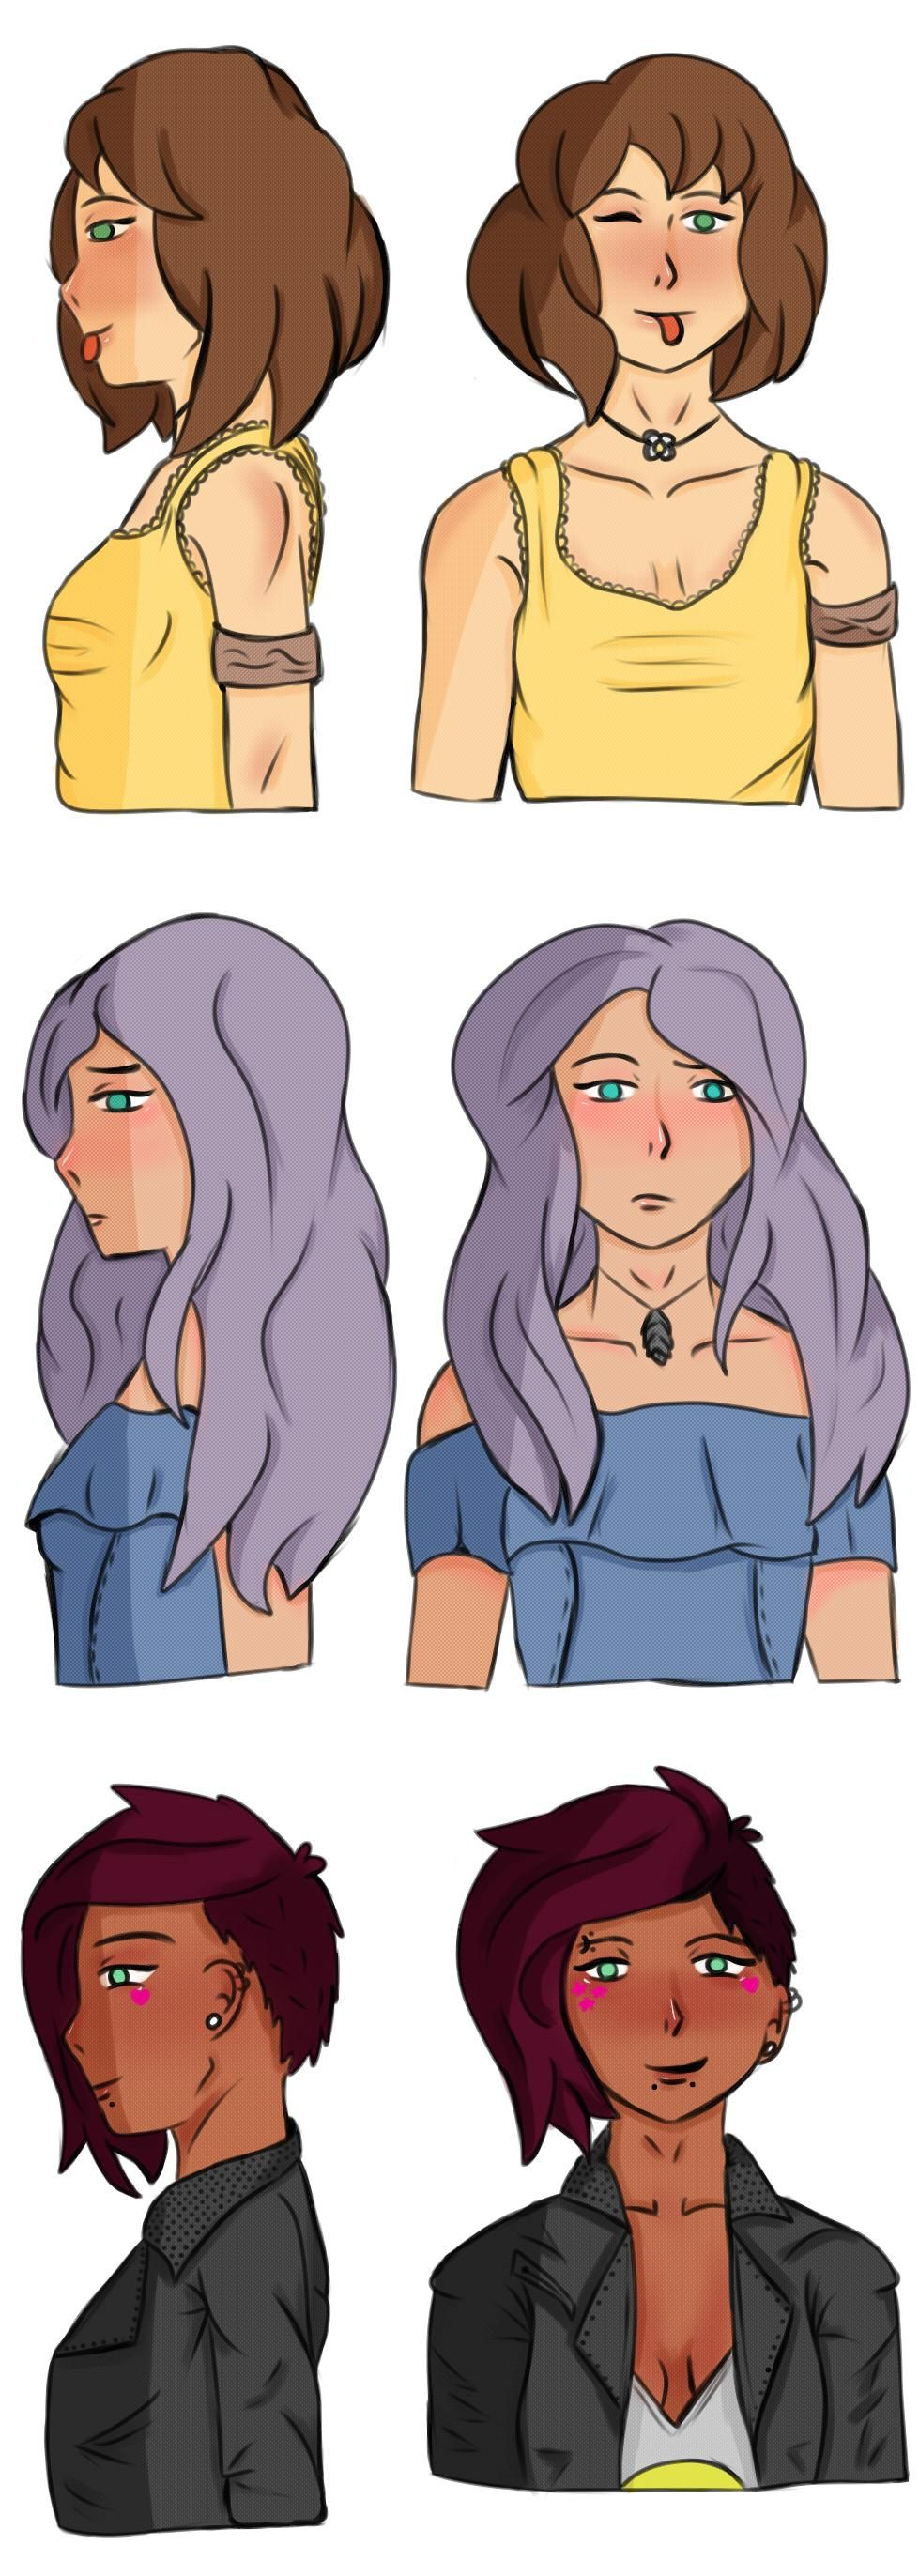 Some Hairstyles - image 5 - student project